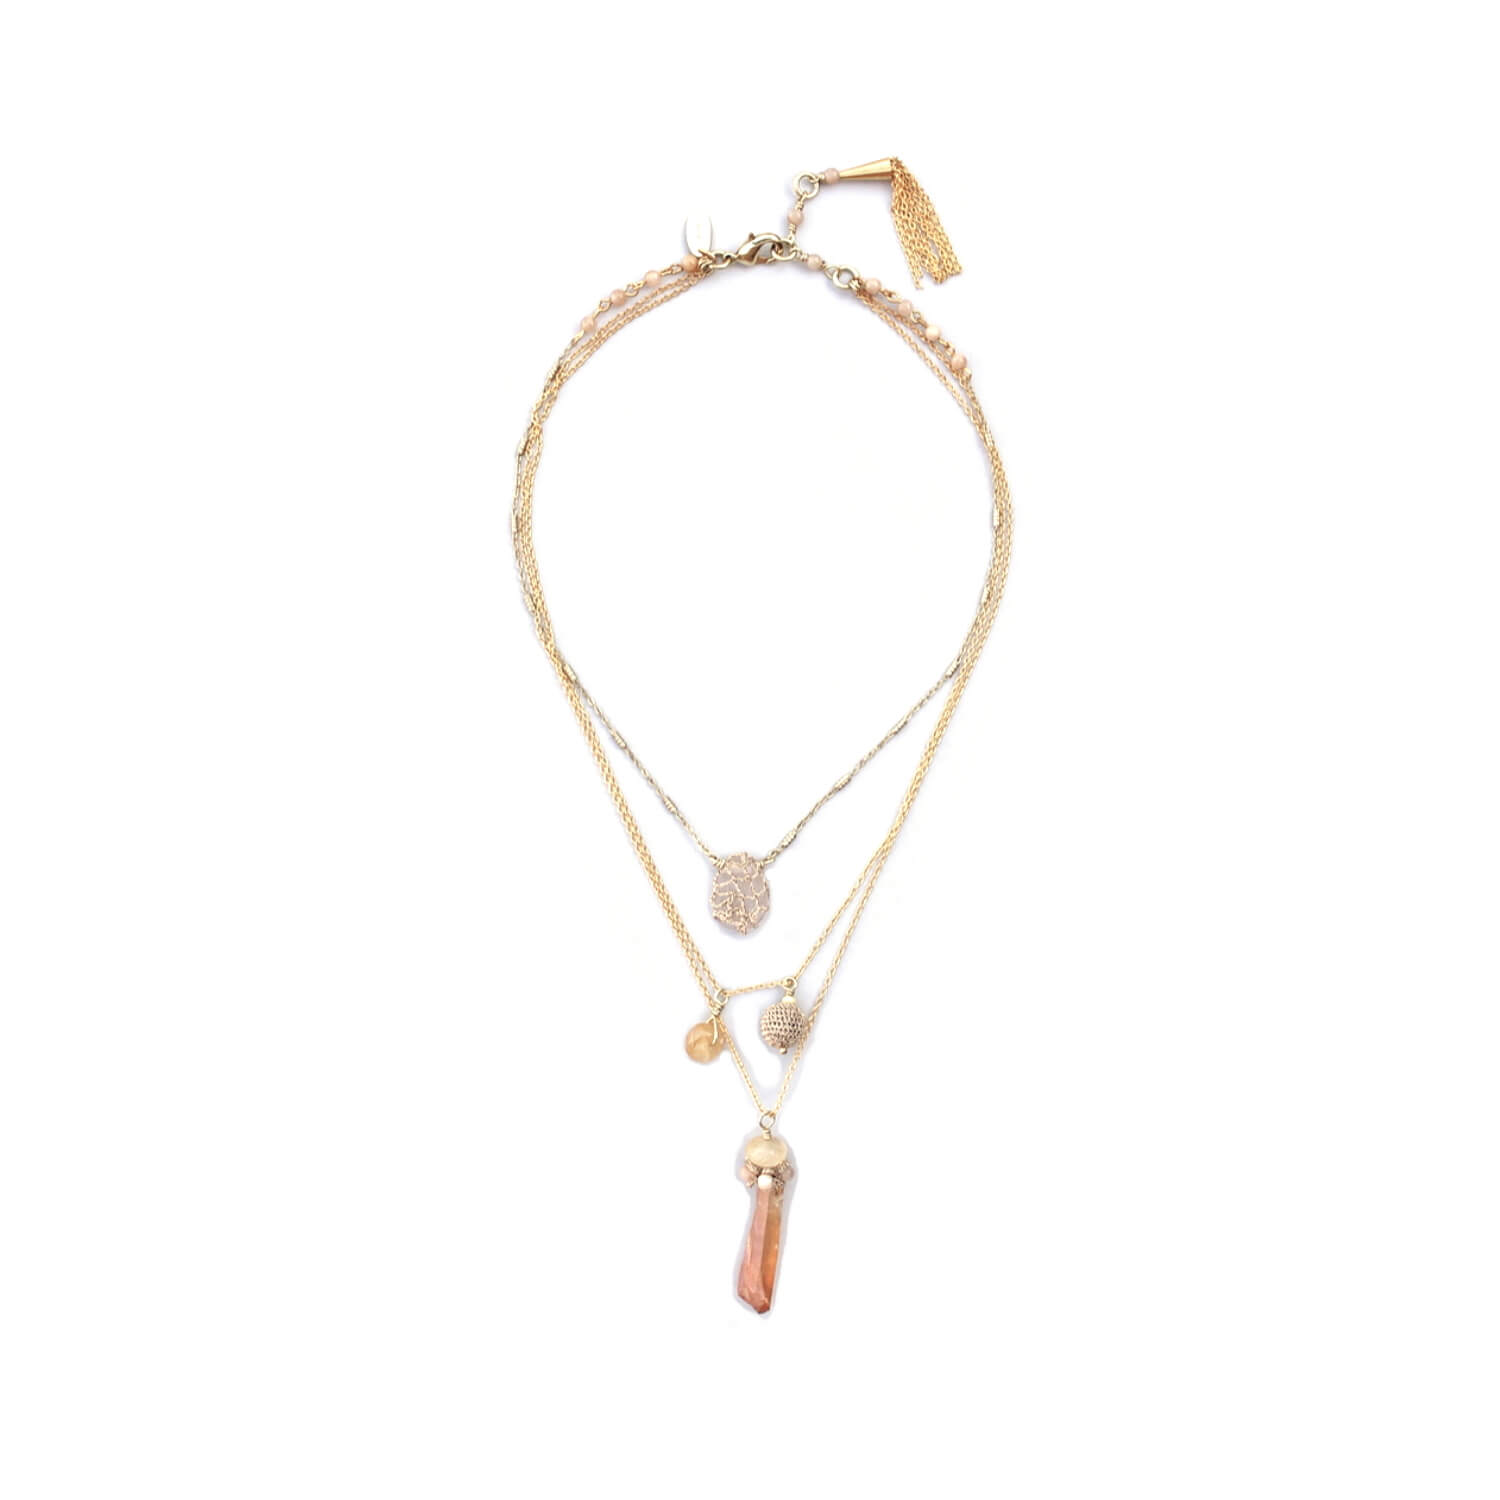 Aphrodite Multi-chain Short Charm Necklace - Rose Quartz